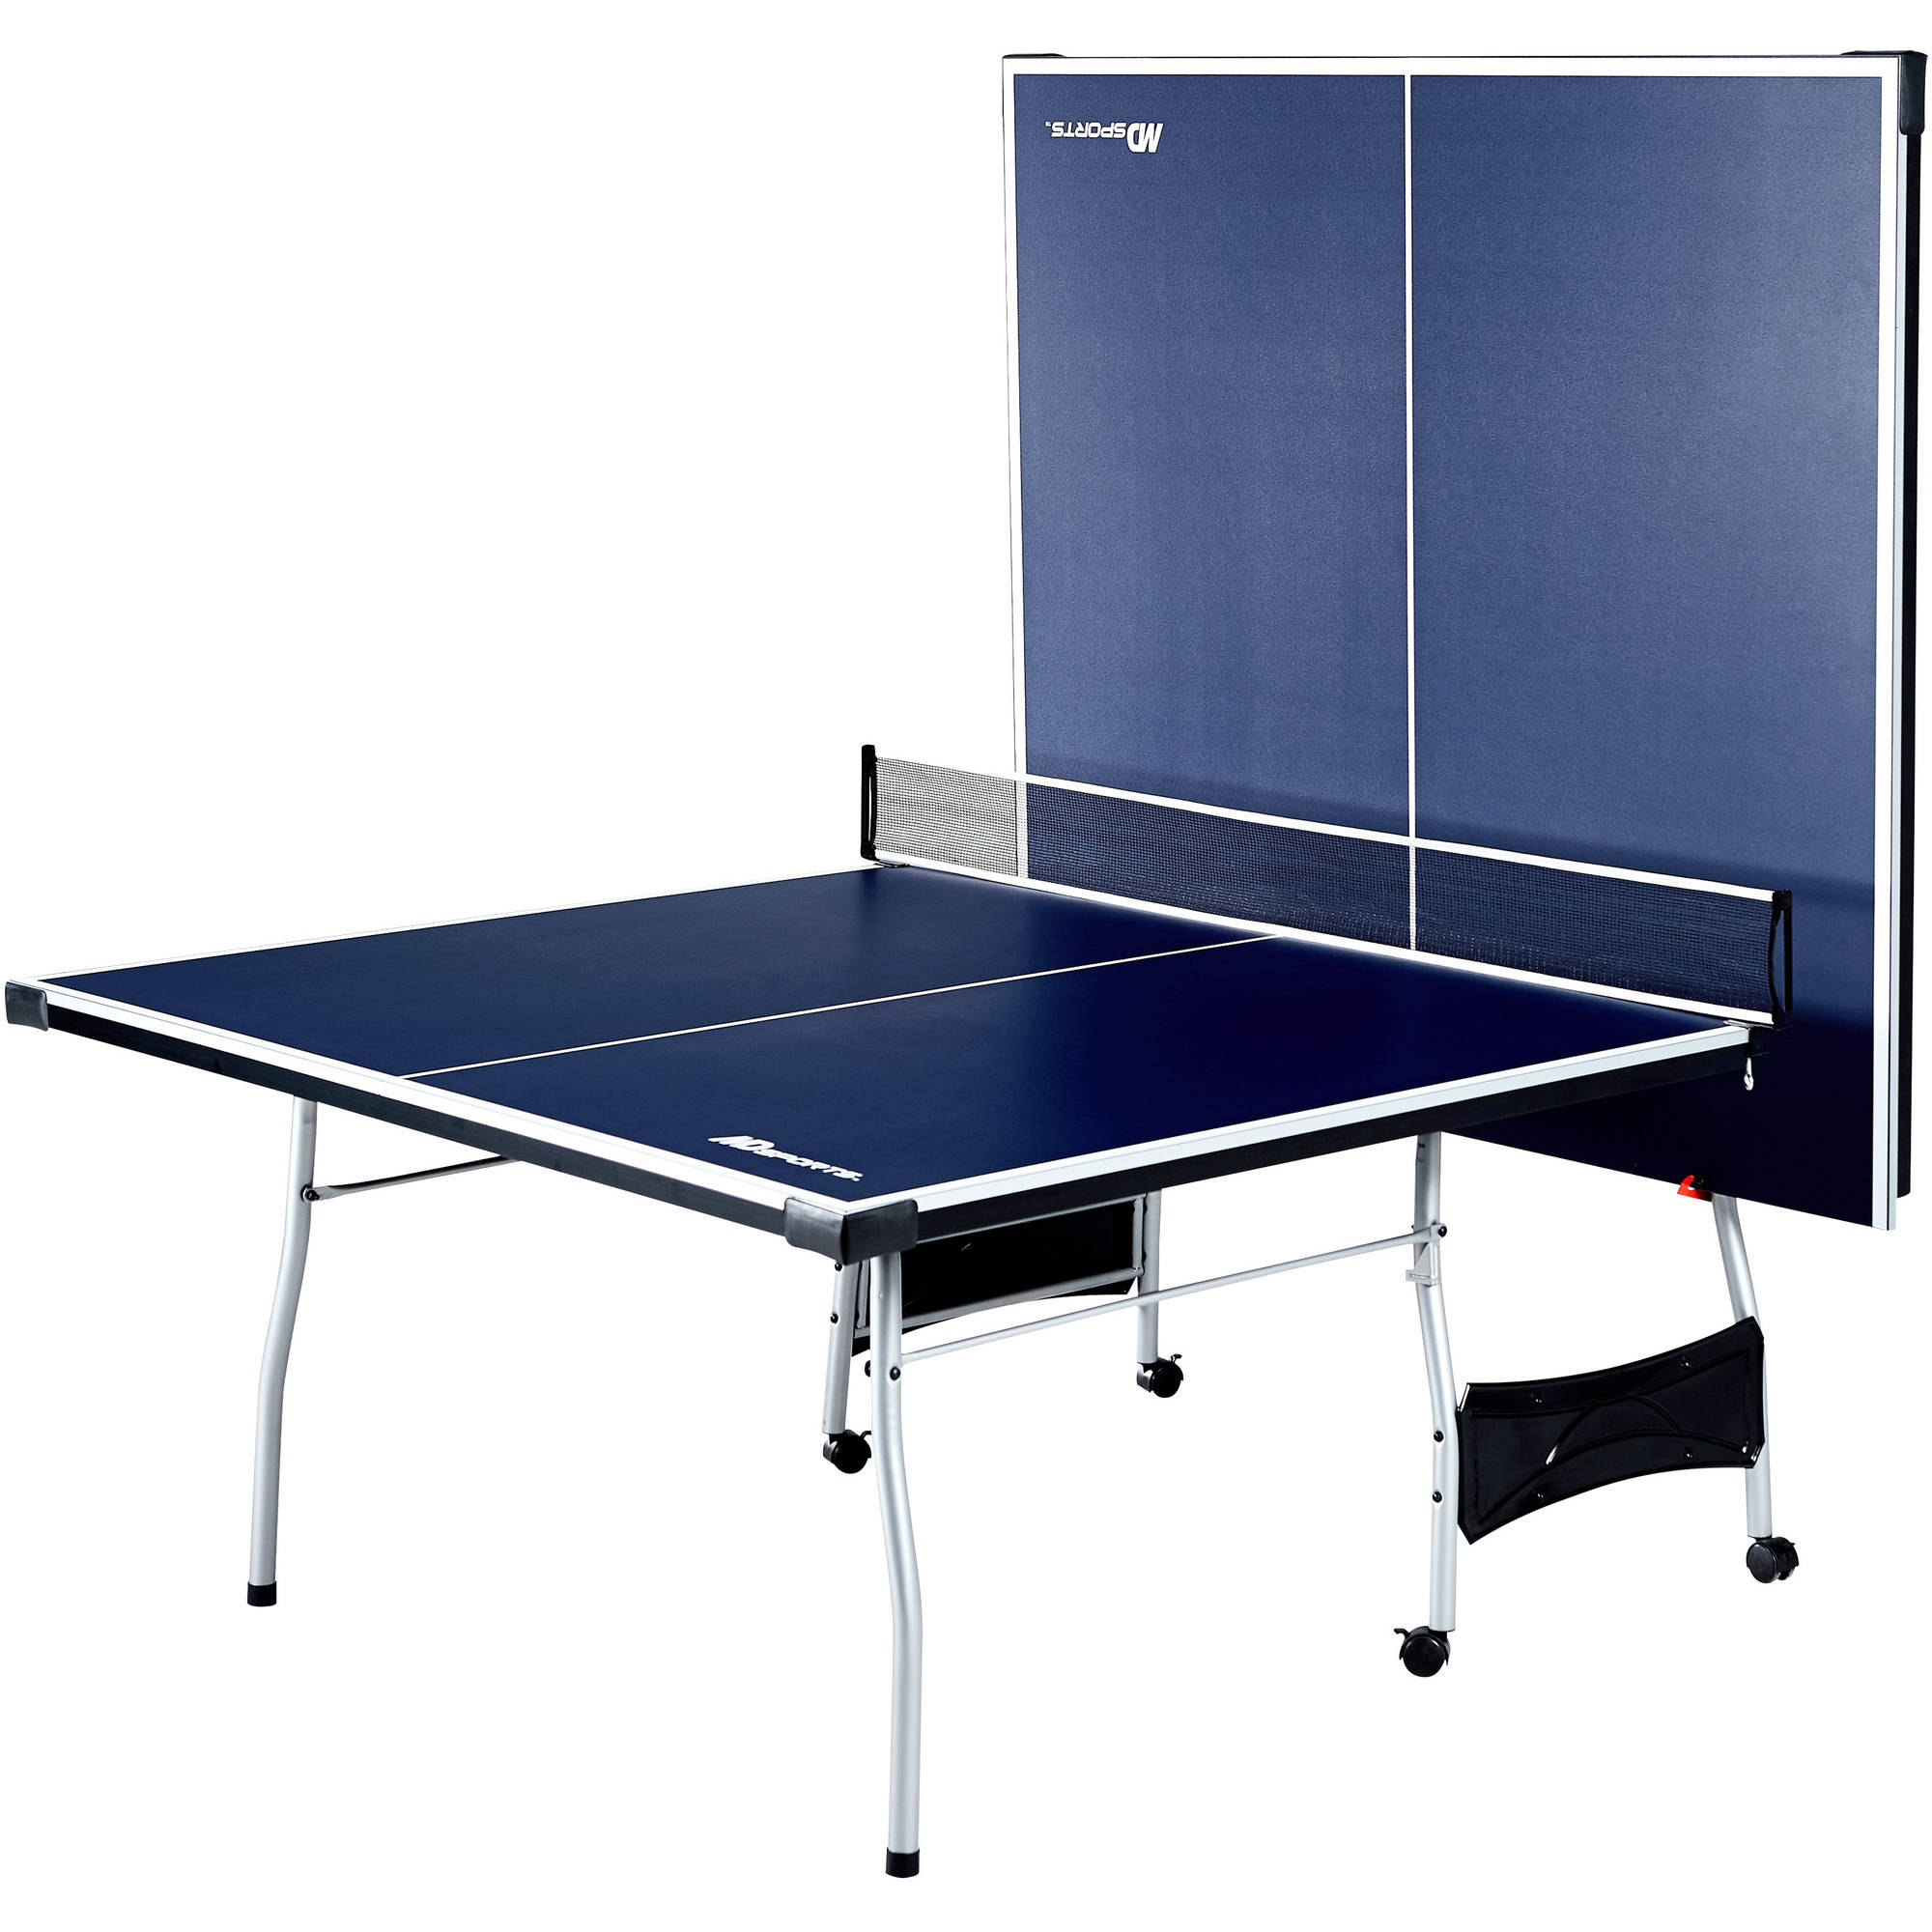 replacement ping pong table top fabulous cornilleau nexeo. Black Bedroom Furniture Sets. Home Design Ideas